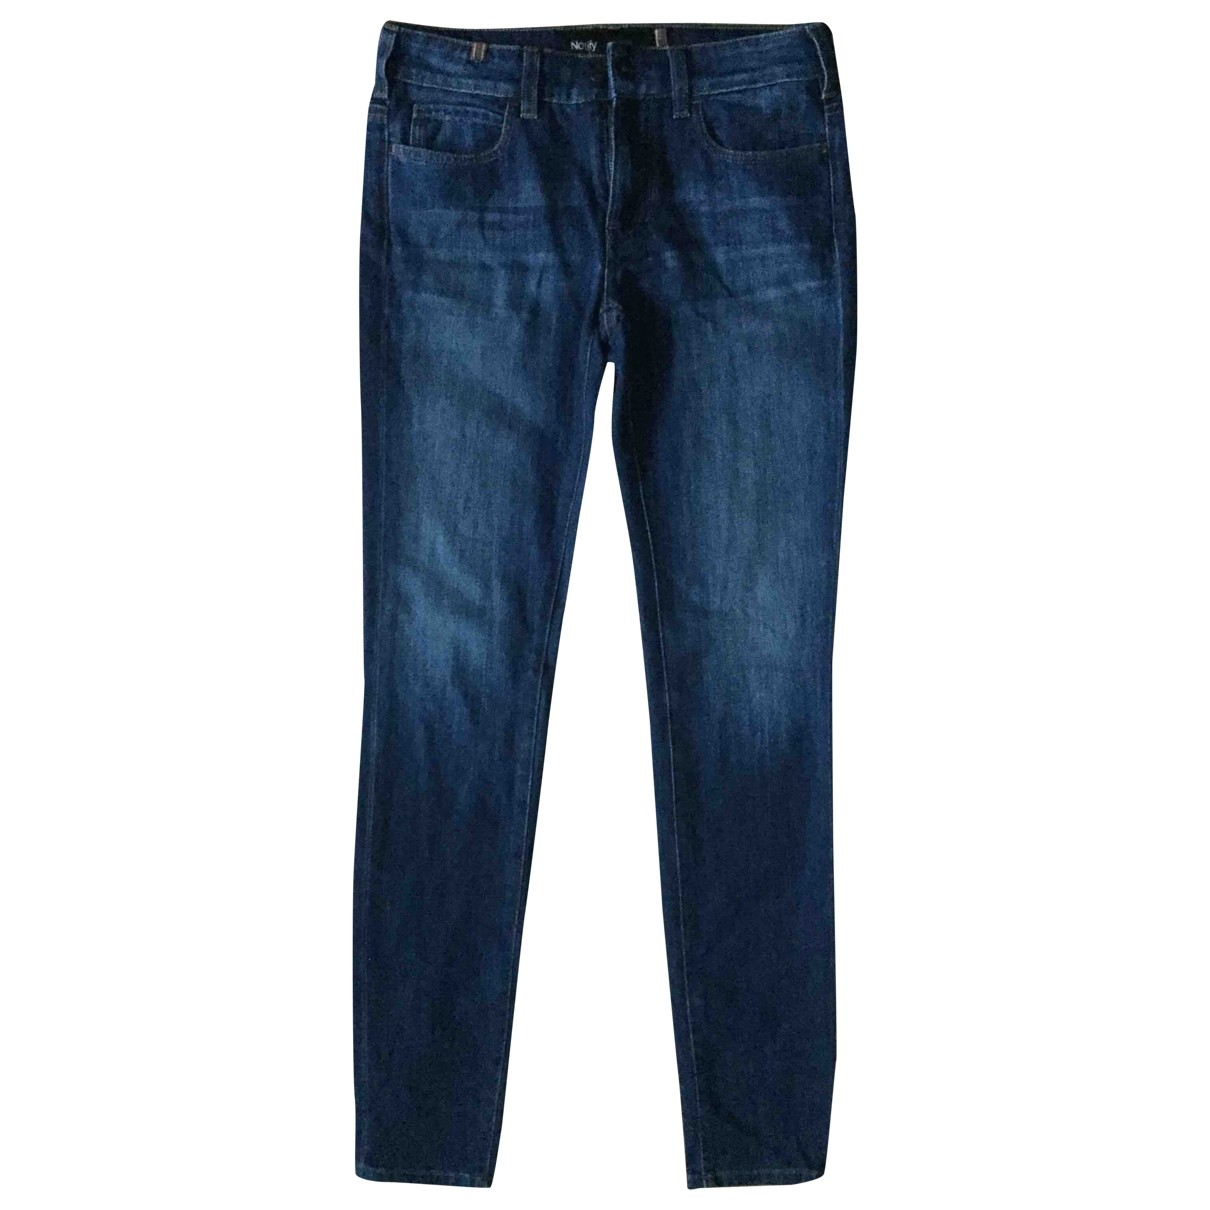 Notify \N Blue Cotton - elasthane Jeans for Women 36 FR